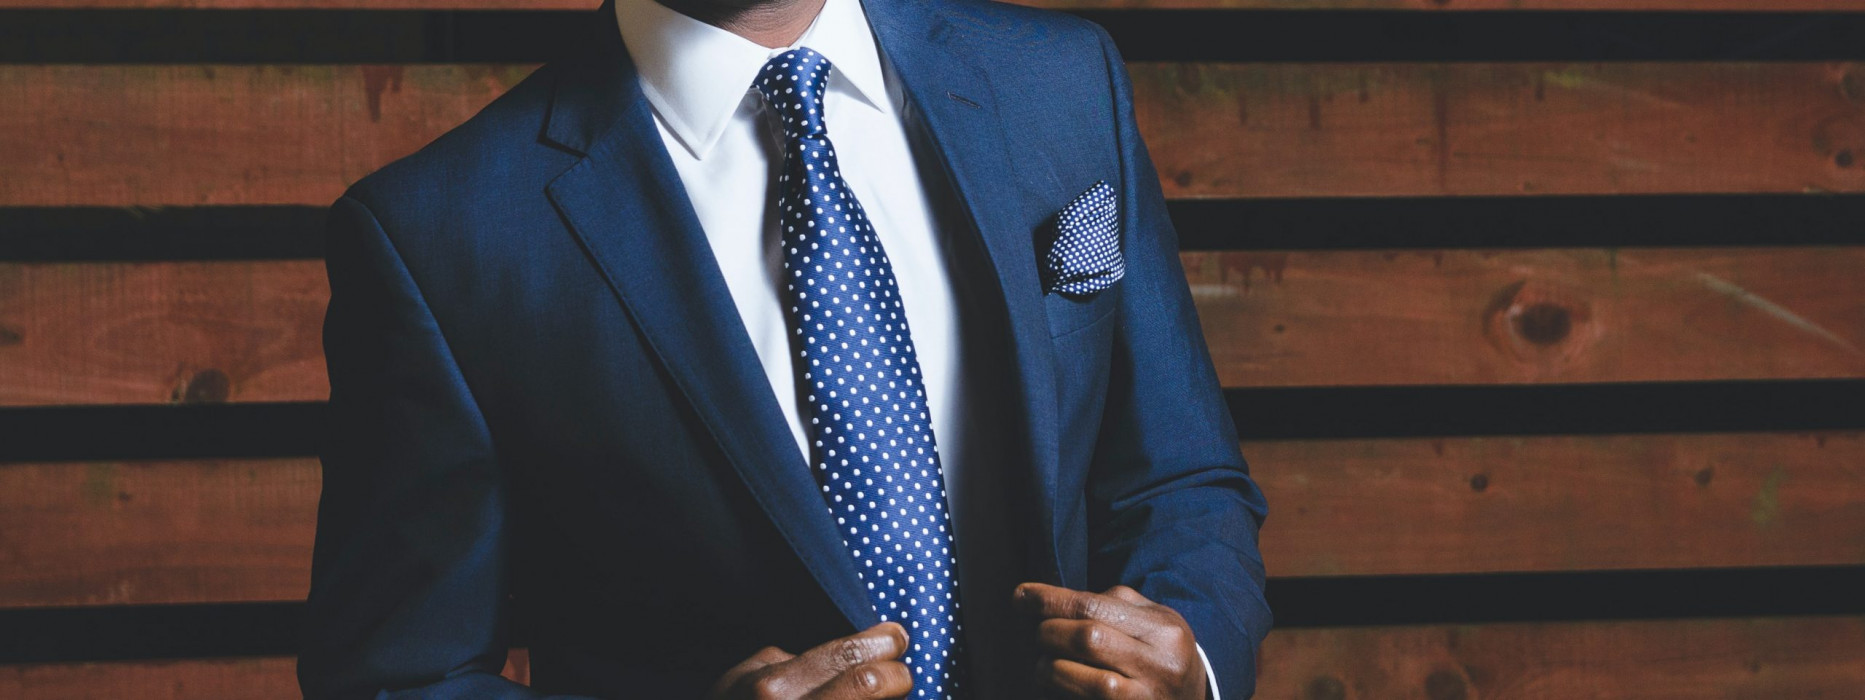 How To Dress For Success In Your Next Interview